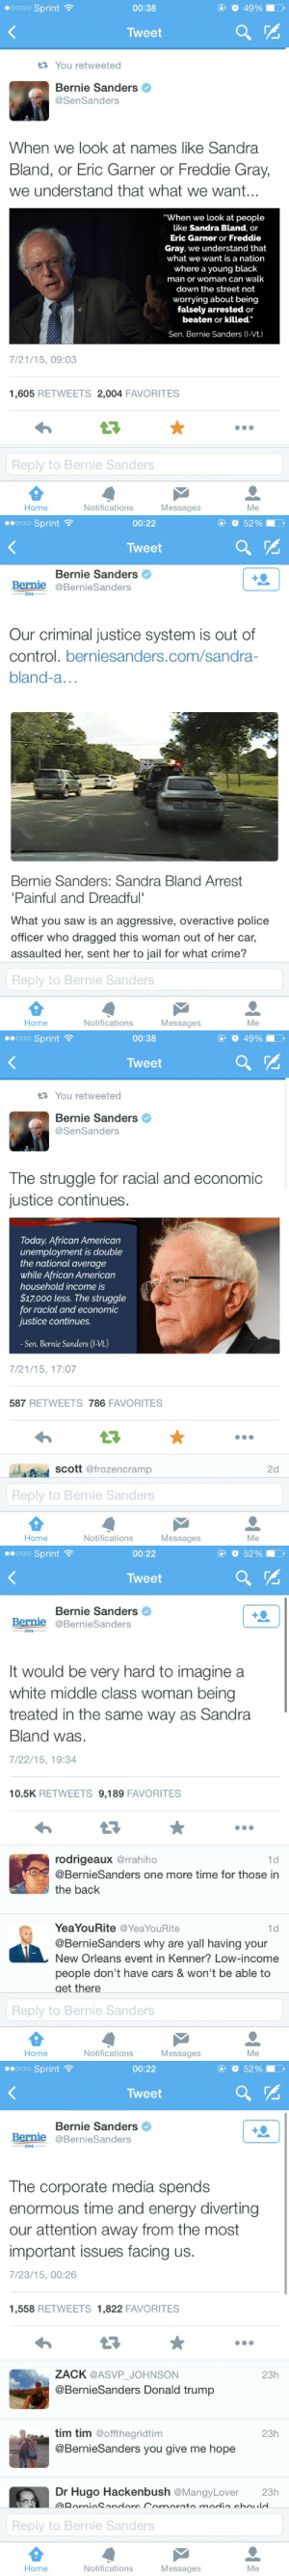 """cyberstripper:  aprettyokaydude:  bernie-sanders2016:  reverseracism:  africanrelic:  crazyykenziee:  SHOUT OUT TO 2016 PRESIDENTIAL CANDIDATE BERNIE SANDERS FOR USING HIS POSITION OF POWER TO SPEAK ABOUT THIS ISSUE AND NOT STAYING SILENT LIKE SO MANY OTHERS!!!!!      I almost can't believe he's doing this. No one ever does this. Especially not to this depth  Honestly, get out and vote.  #feelthebern Fun fact: Bernie Sanders marched with Martin Luther King during the March on Washington to hear his speech. He's no stranger to fighting for civil rights.  FUN FACT: Bernie Sanders campaign has devised a way to drown out and drive away protesters from Black Lives Matter. Solidarity <3 #FeeltheBern  FUN FACT: in response to the blm protestors taking the stage from him a few days ago bernie hired a blm advocate as his secretary to advise him on what he can do to help the black community   Yet some of you """"activists"""" are still unhappy as if he is able to snap a finger and end all problems. It'll be a lot of work and we millenials have to actually vote for him.: O 49%  •0000 Sprint ?  00:38  Tweet  17 You retweeted  Bernie Sanders  @SenSanders  When we look at names like Sandra  Bland, or Eric Garner or Freddie Gray,  we understand that what we want...  """"When we look at people  like Sandra Bland, or  Eric Garner or Freddie  Gray, we understand that  what we want is a nation  where a young black  man or woman can walk  down the street not  worrying about being  falsely arrested or  beaten or killed.""""  Sen. Bernie Sanders (I-Vt.)  7/21/15, 09:03  1,605 RETWEETS 2,004 FAVORITES  17  Reply to Bernie Sanders  Home  Notifications  Messages  Me   00000 Sprint ?  O52%  00:22  Tweet  Bernie Sanders  Bernie @BernieSanders  2016  Our criminal justice system is out of  control. berniesanders.com/sandra-  bland-a...  Bernie Sanders: Sandra Bland Arrest  'Painful and Dreadful'  What you saw is an aggressive, overactive police  officer who dragged this woman out of her car,  assaulted her"""